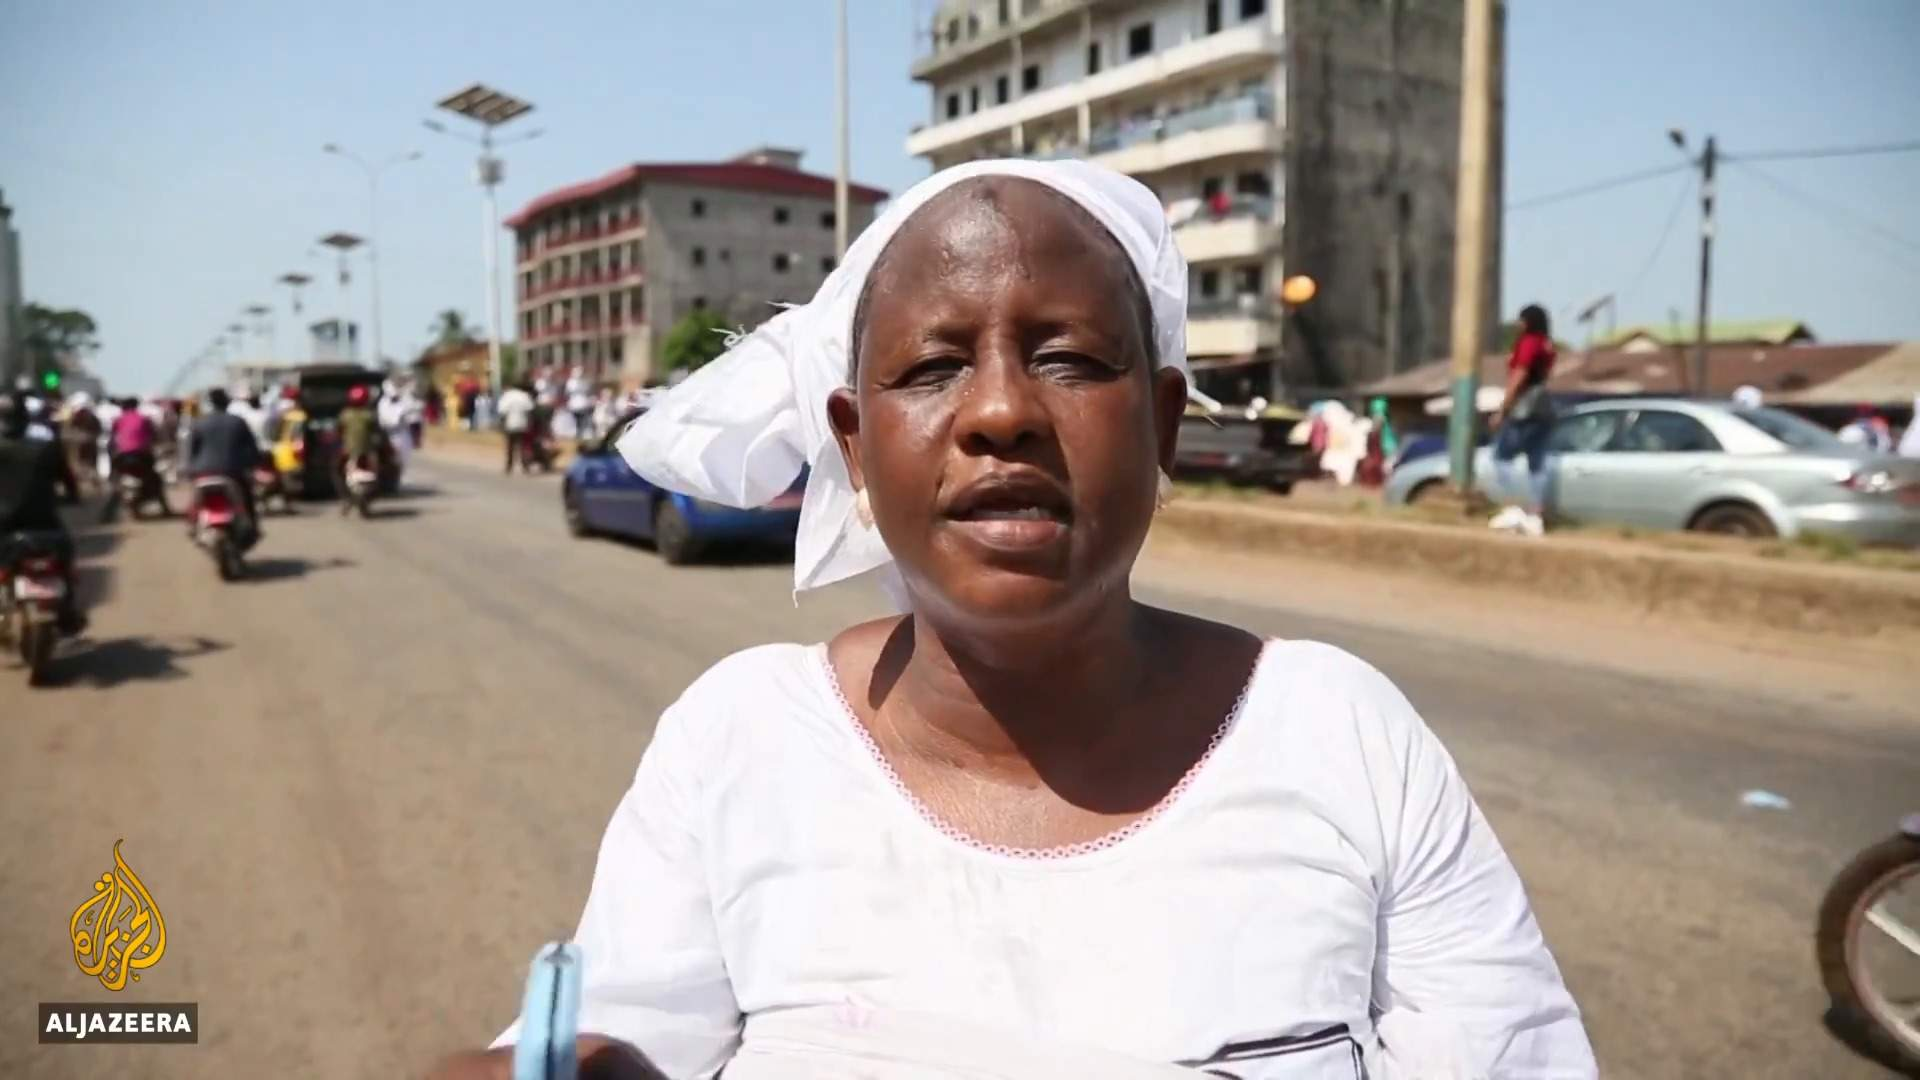 Mothers in Guinea rally against police violence